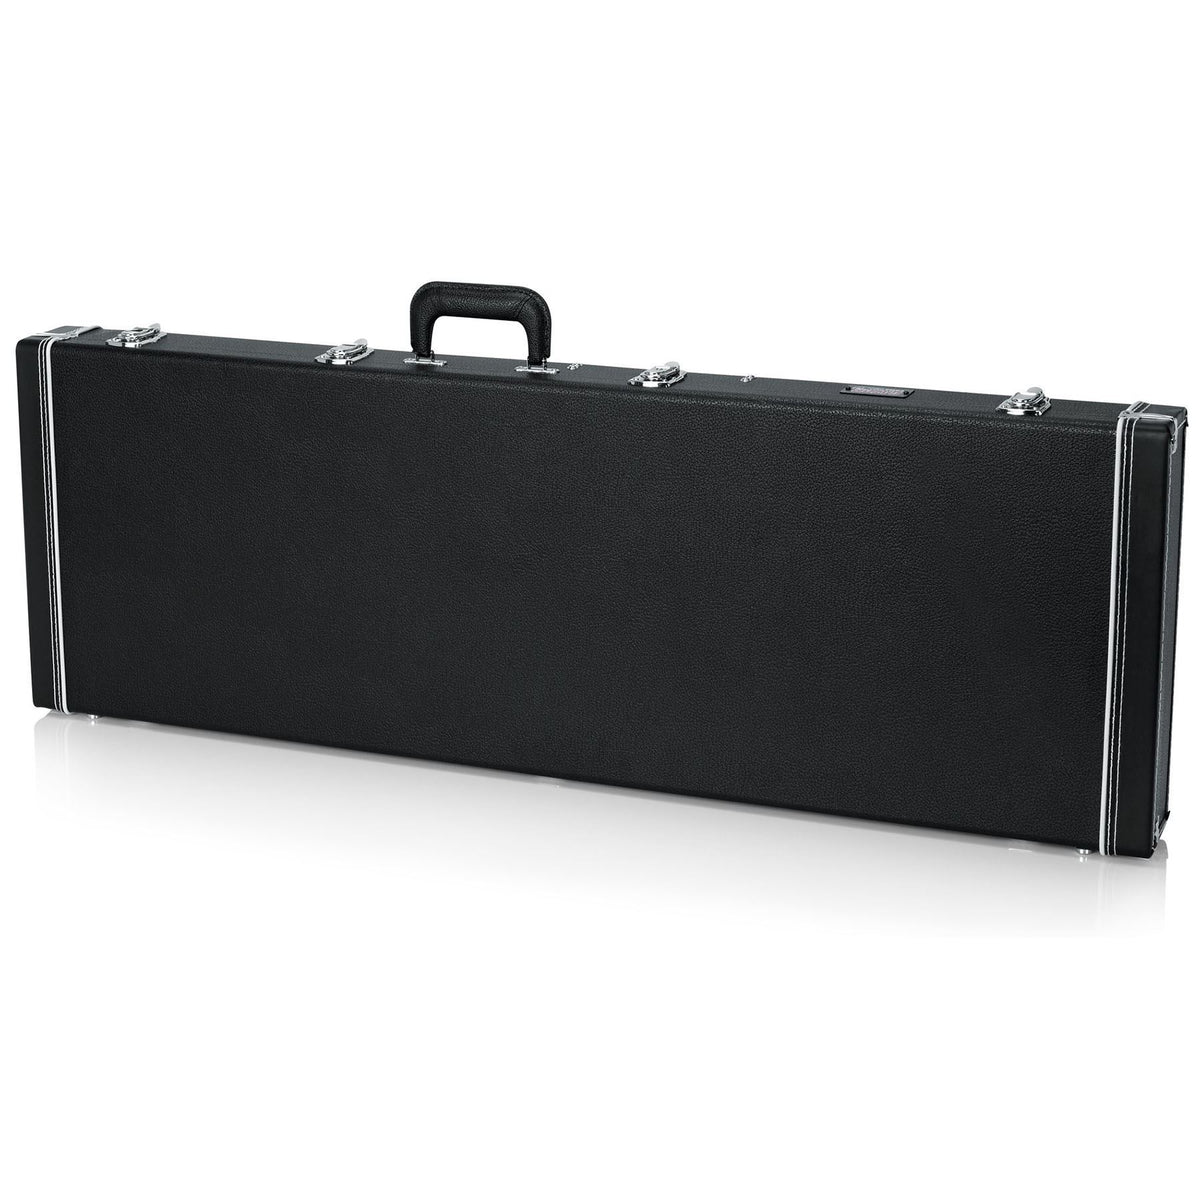 Gator Cases Deluxe Wood Case for Ibanez SRX2EX1, SRX300, SRX3EXQM1 Bass Guitars